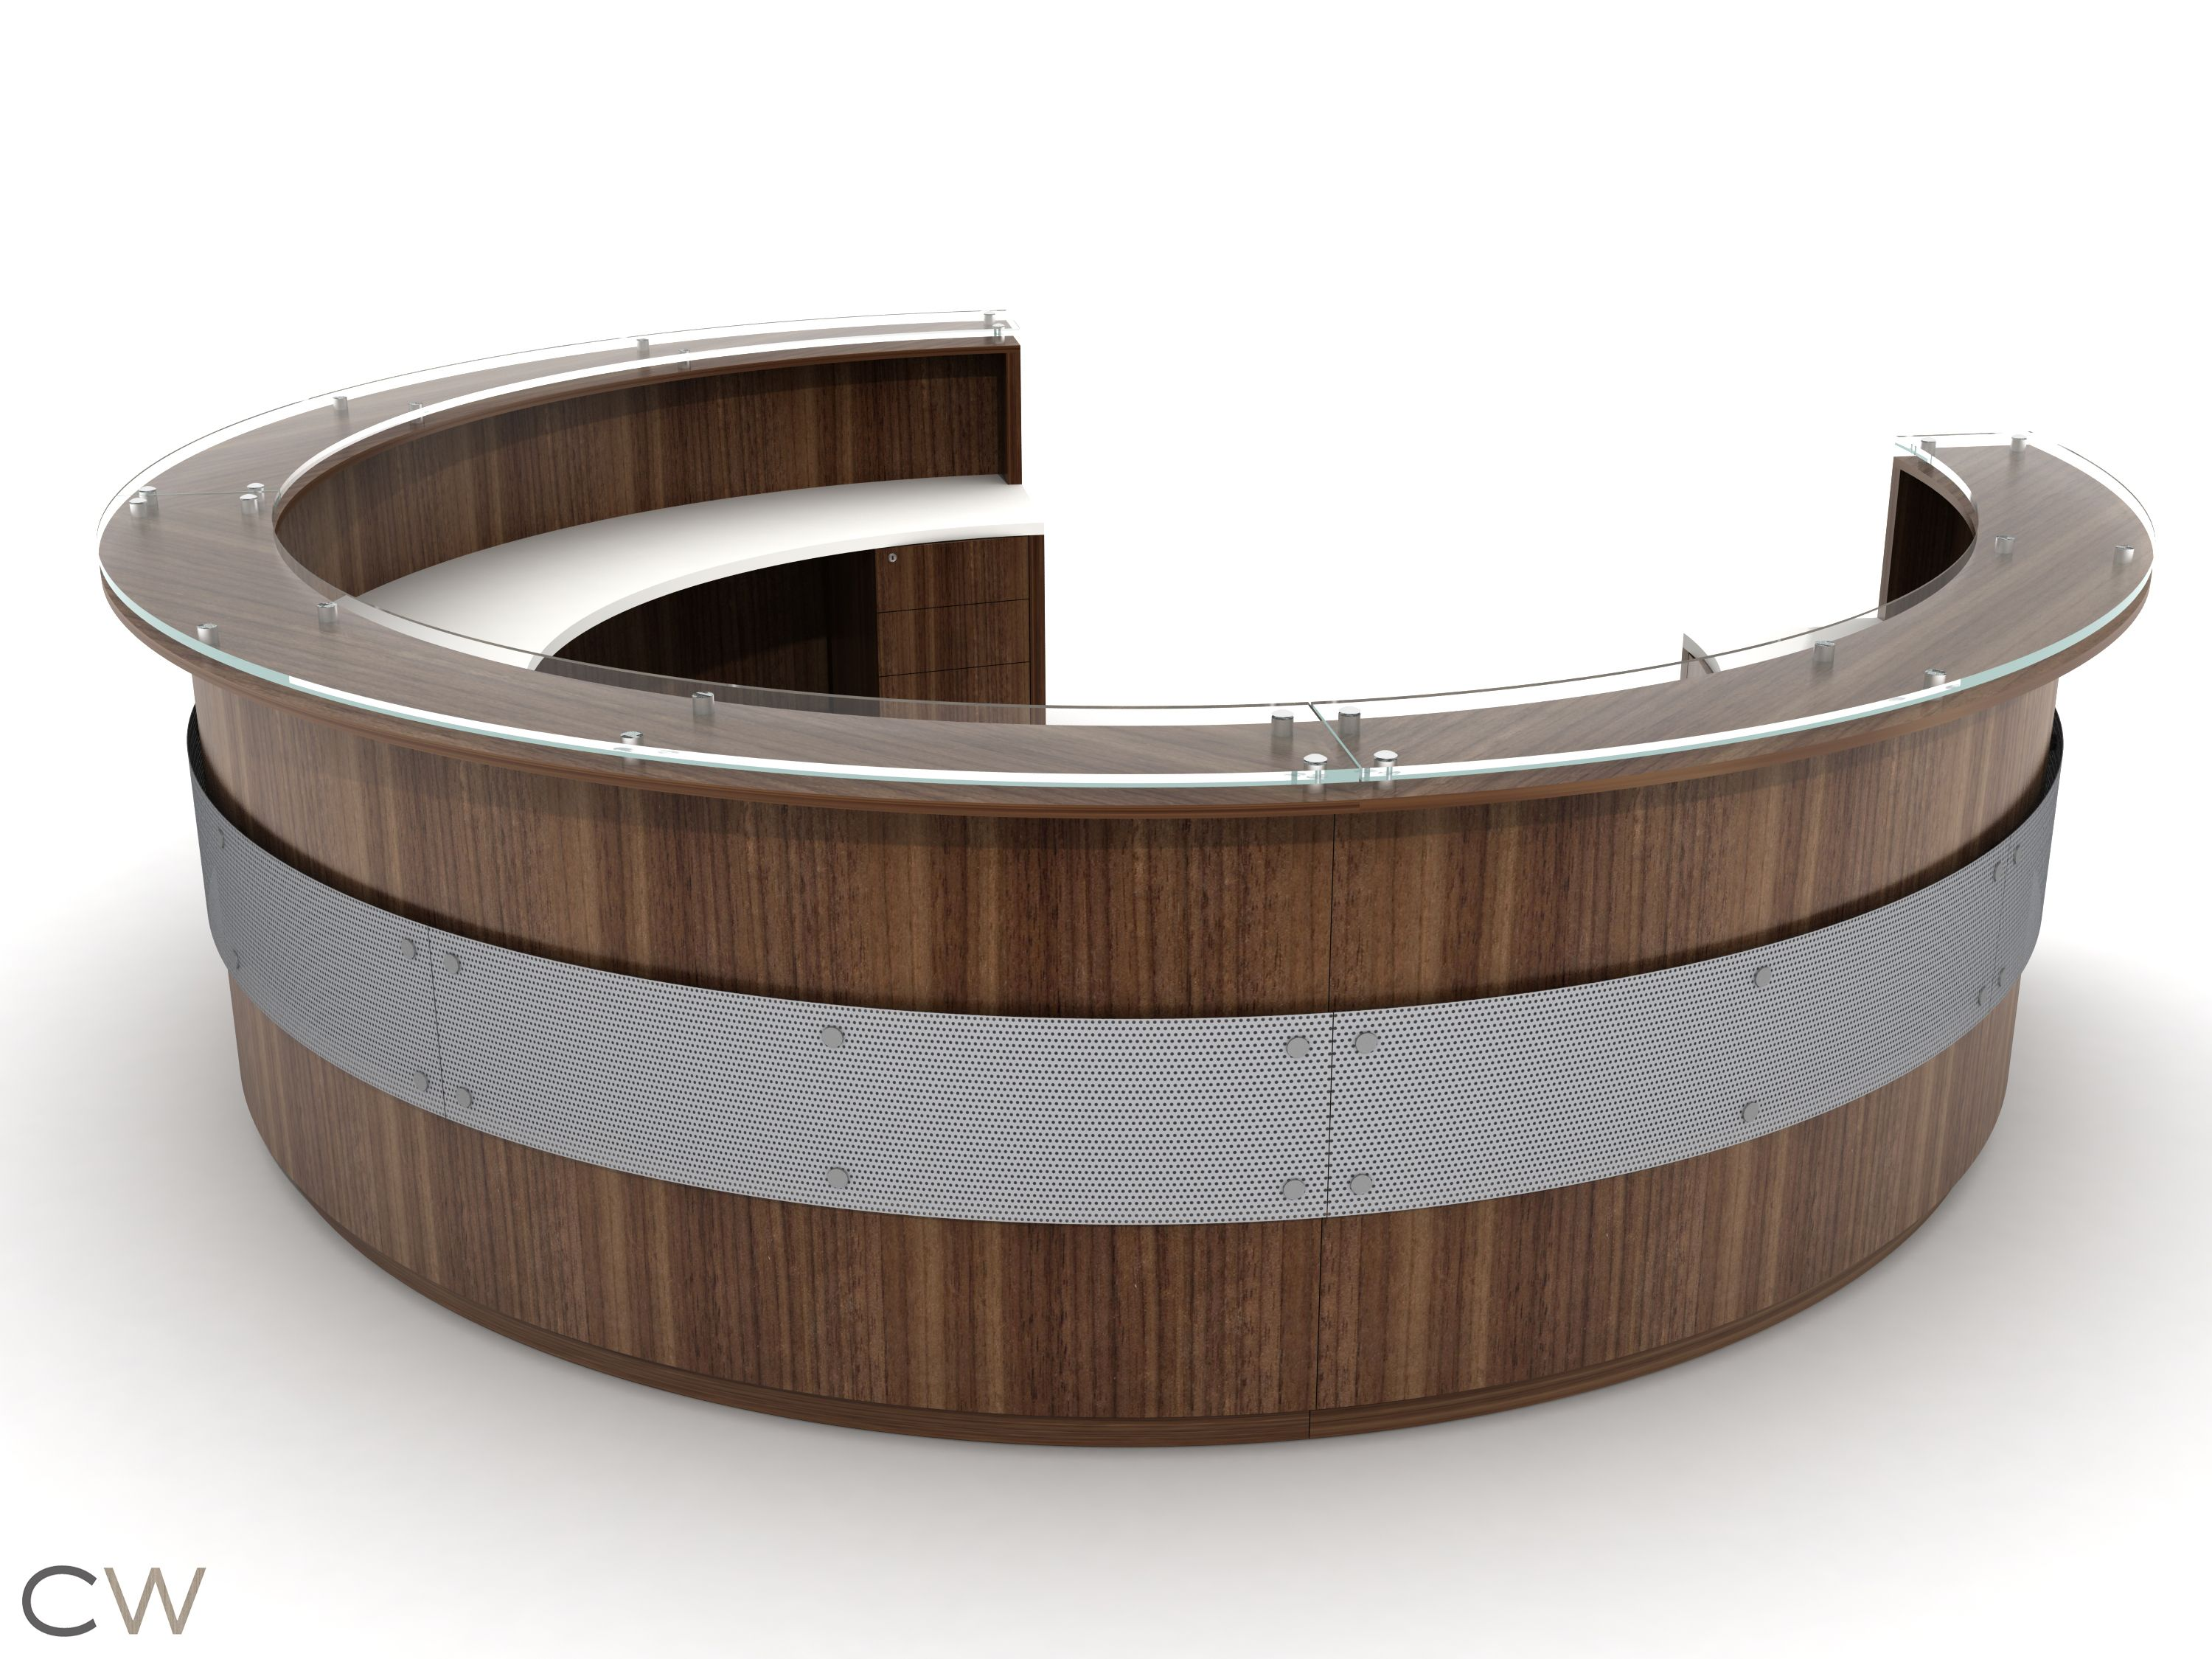 Full Circular Greeting Desk with Floating Circular Accent Screen